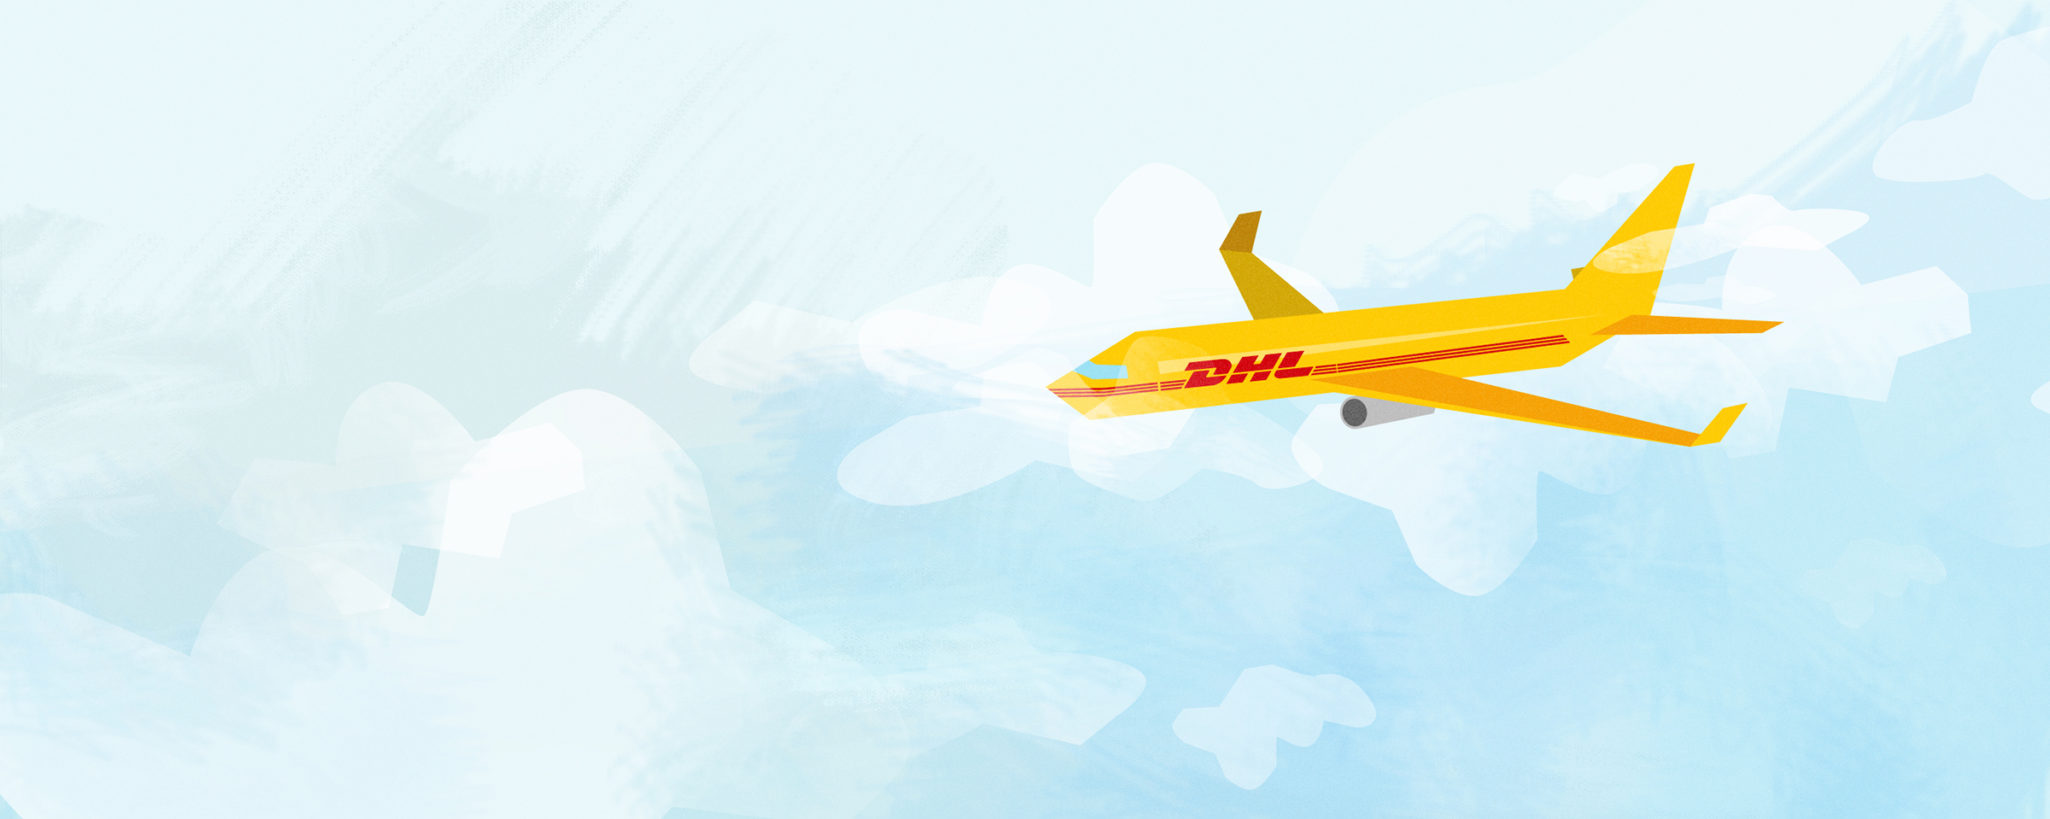 Styleframe illustration for DHL animation: Cargo plane